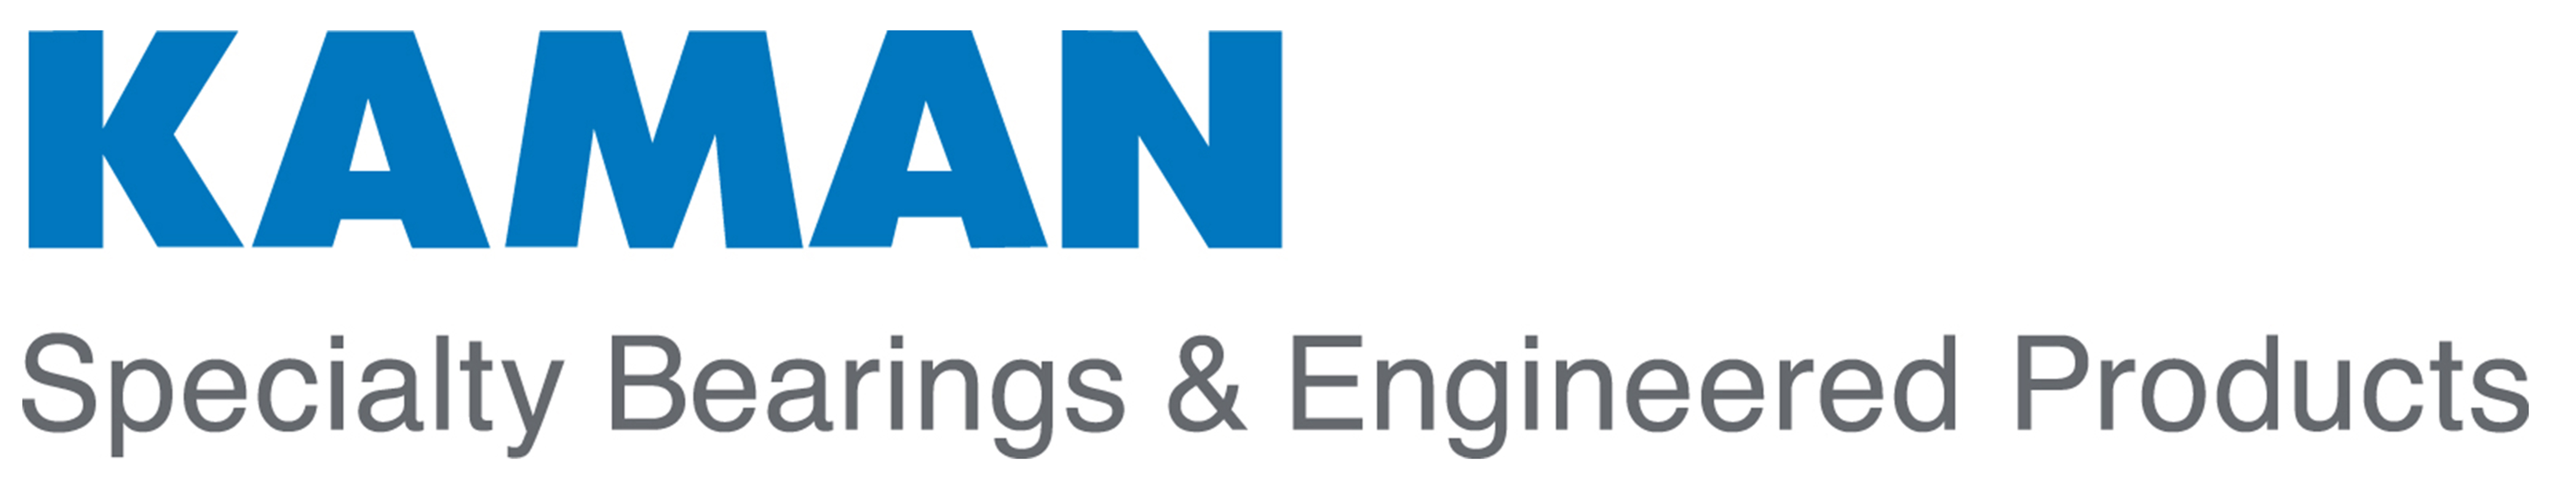 KAMAN SPECIALTY BEARINGS & ENGINEERED PRODUCTS